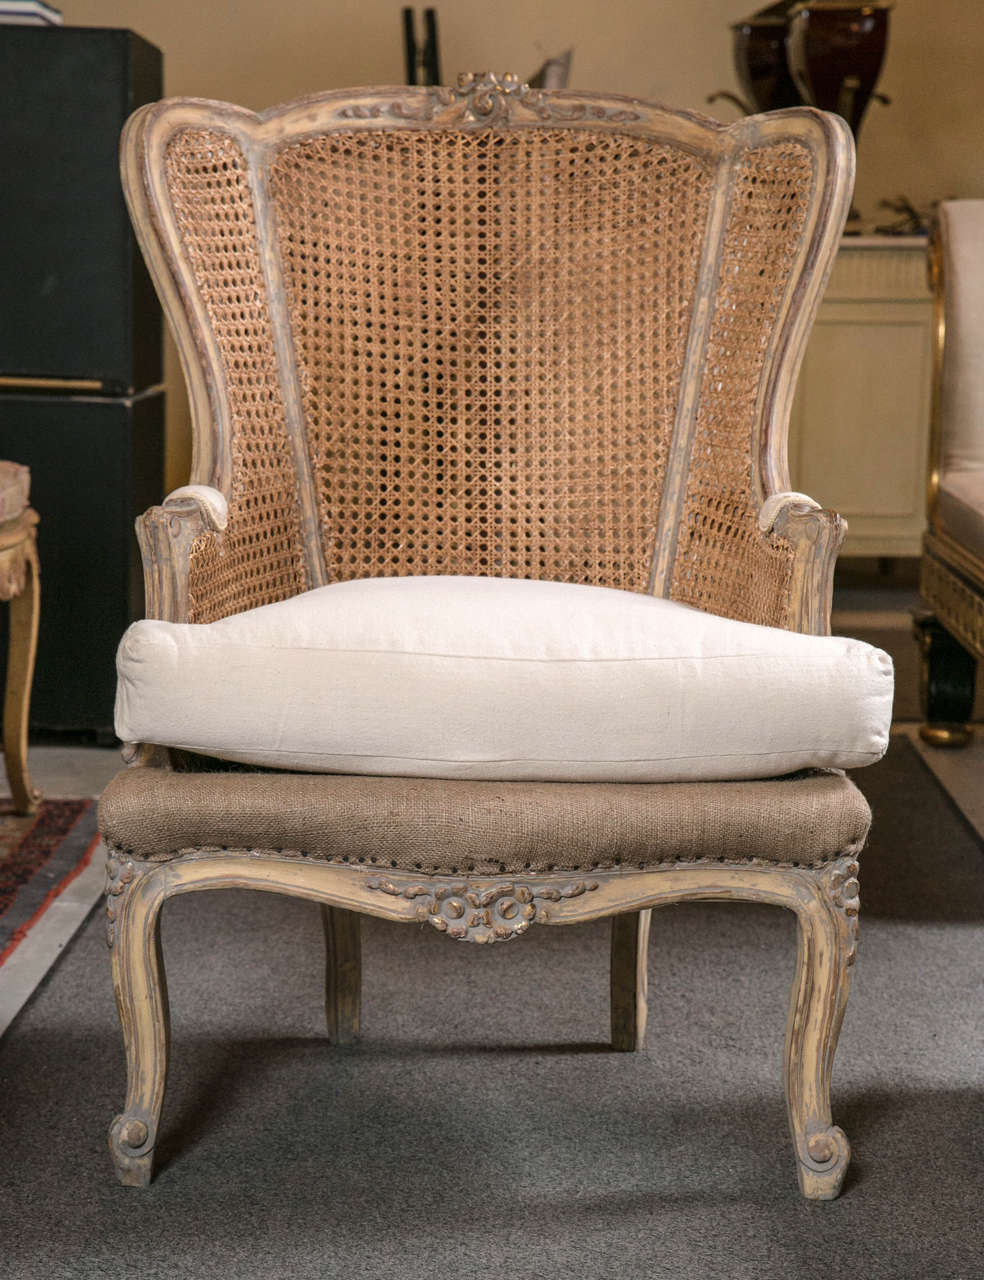 Pair of vintage French Louis XV style caned wingback bergère chairs, circa 1930s, stunning and impossible to find! In original distressed finish with a touch of grey, the slightly domed back flanked by winged sides and padded arms, the back